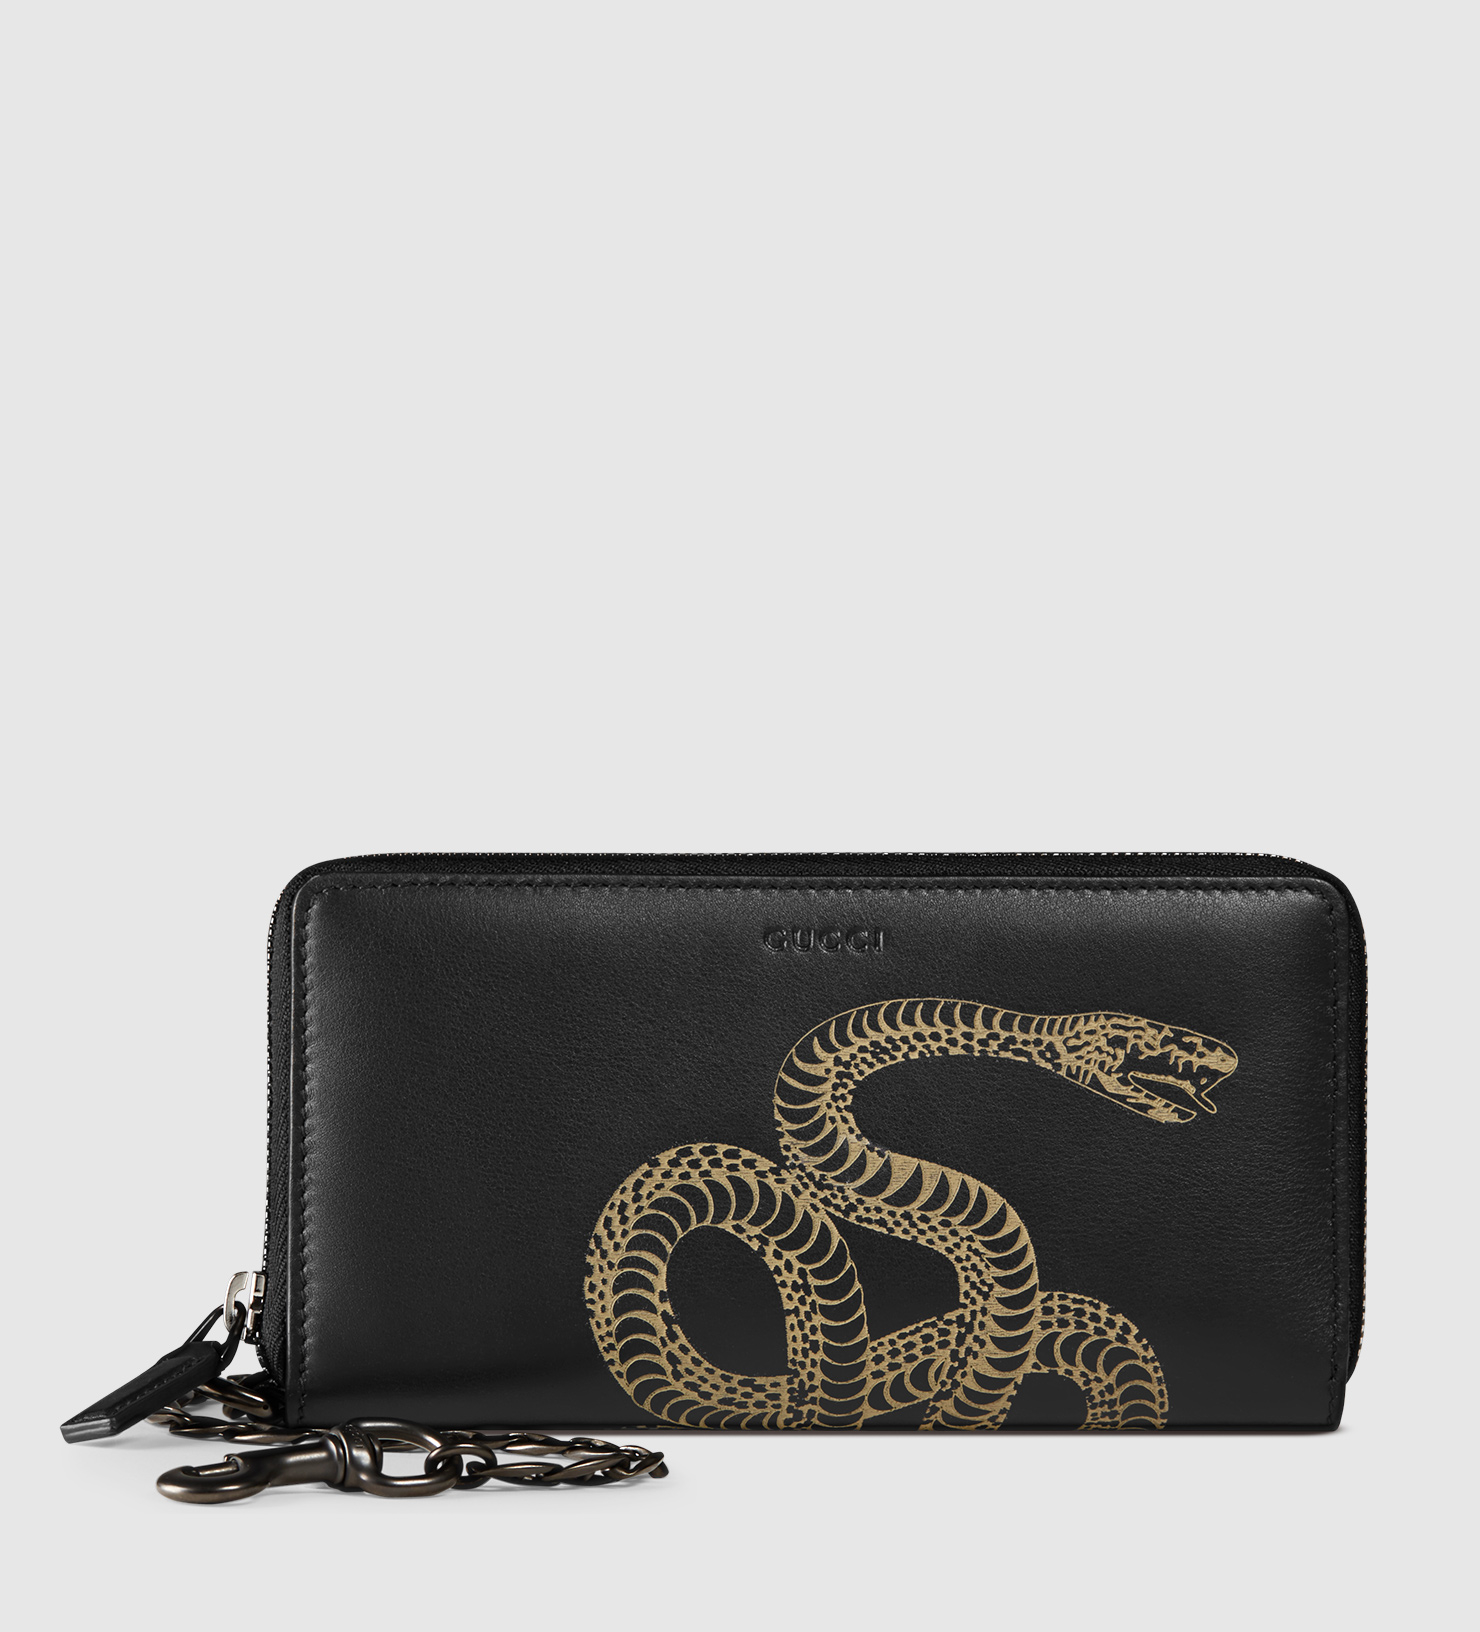 83bf6fb7d9b Lyst - Gucci Snake Leather Chain Wallet for Men